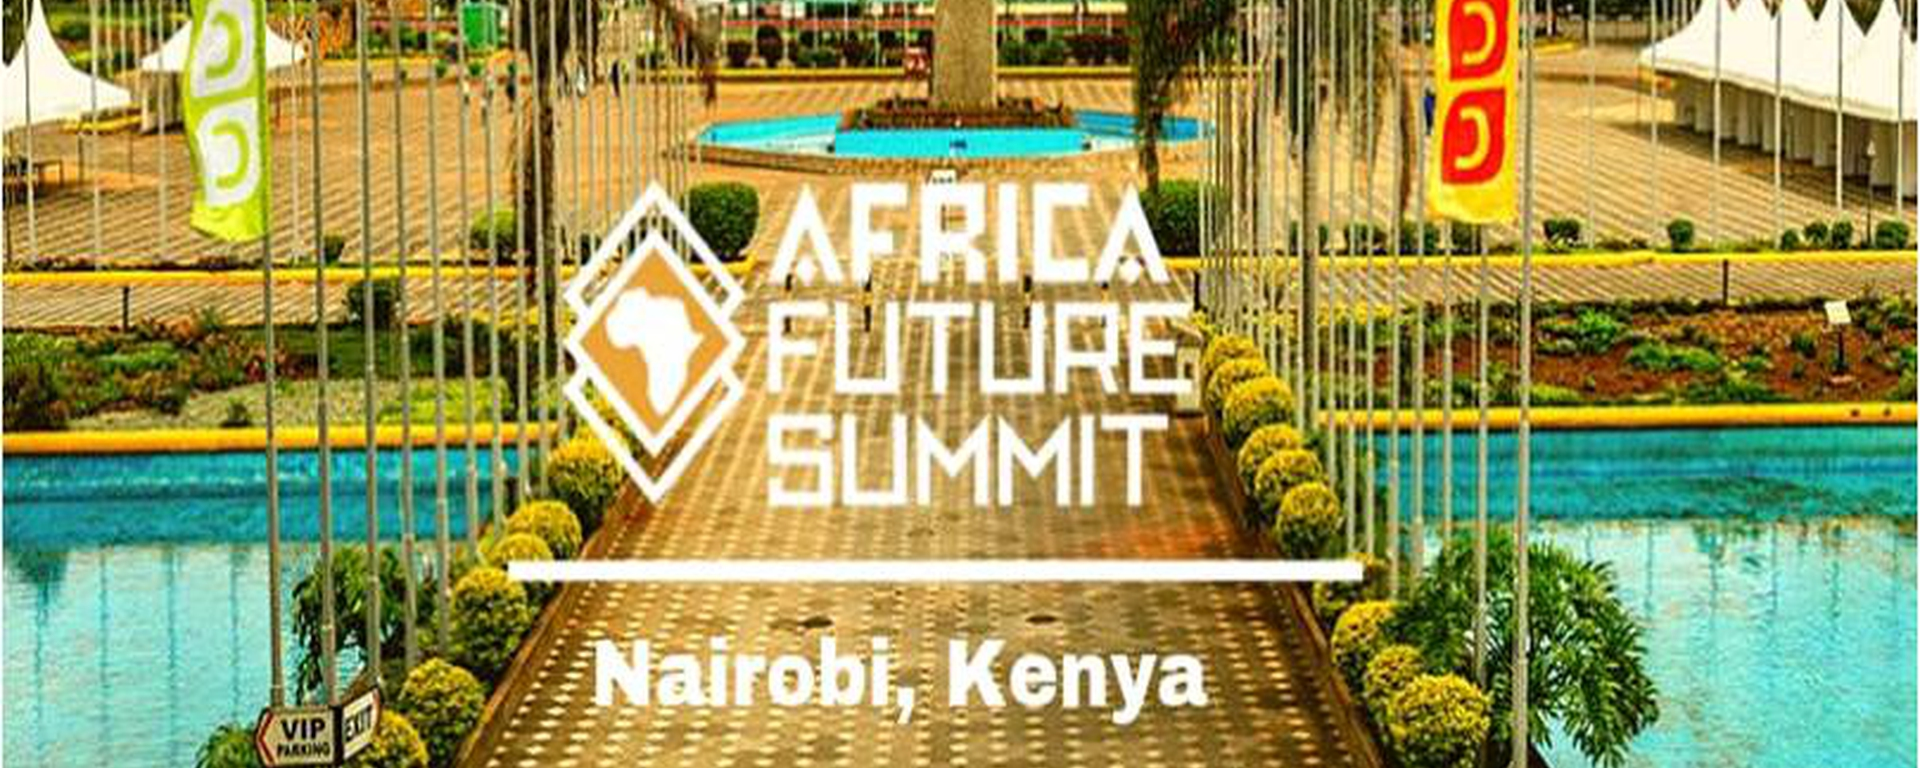 The Africa Fintech Summit - Africa Future Summit (Kenya) Movemeback African event cover image